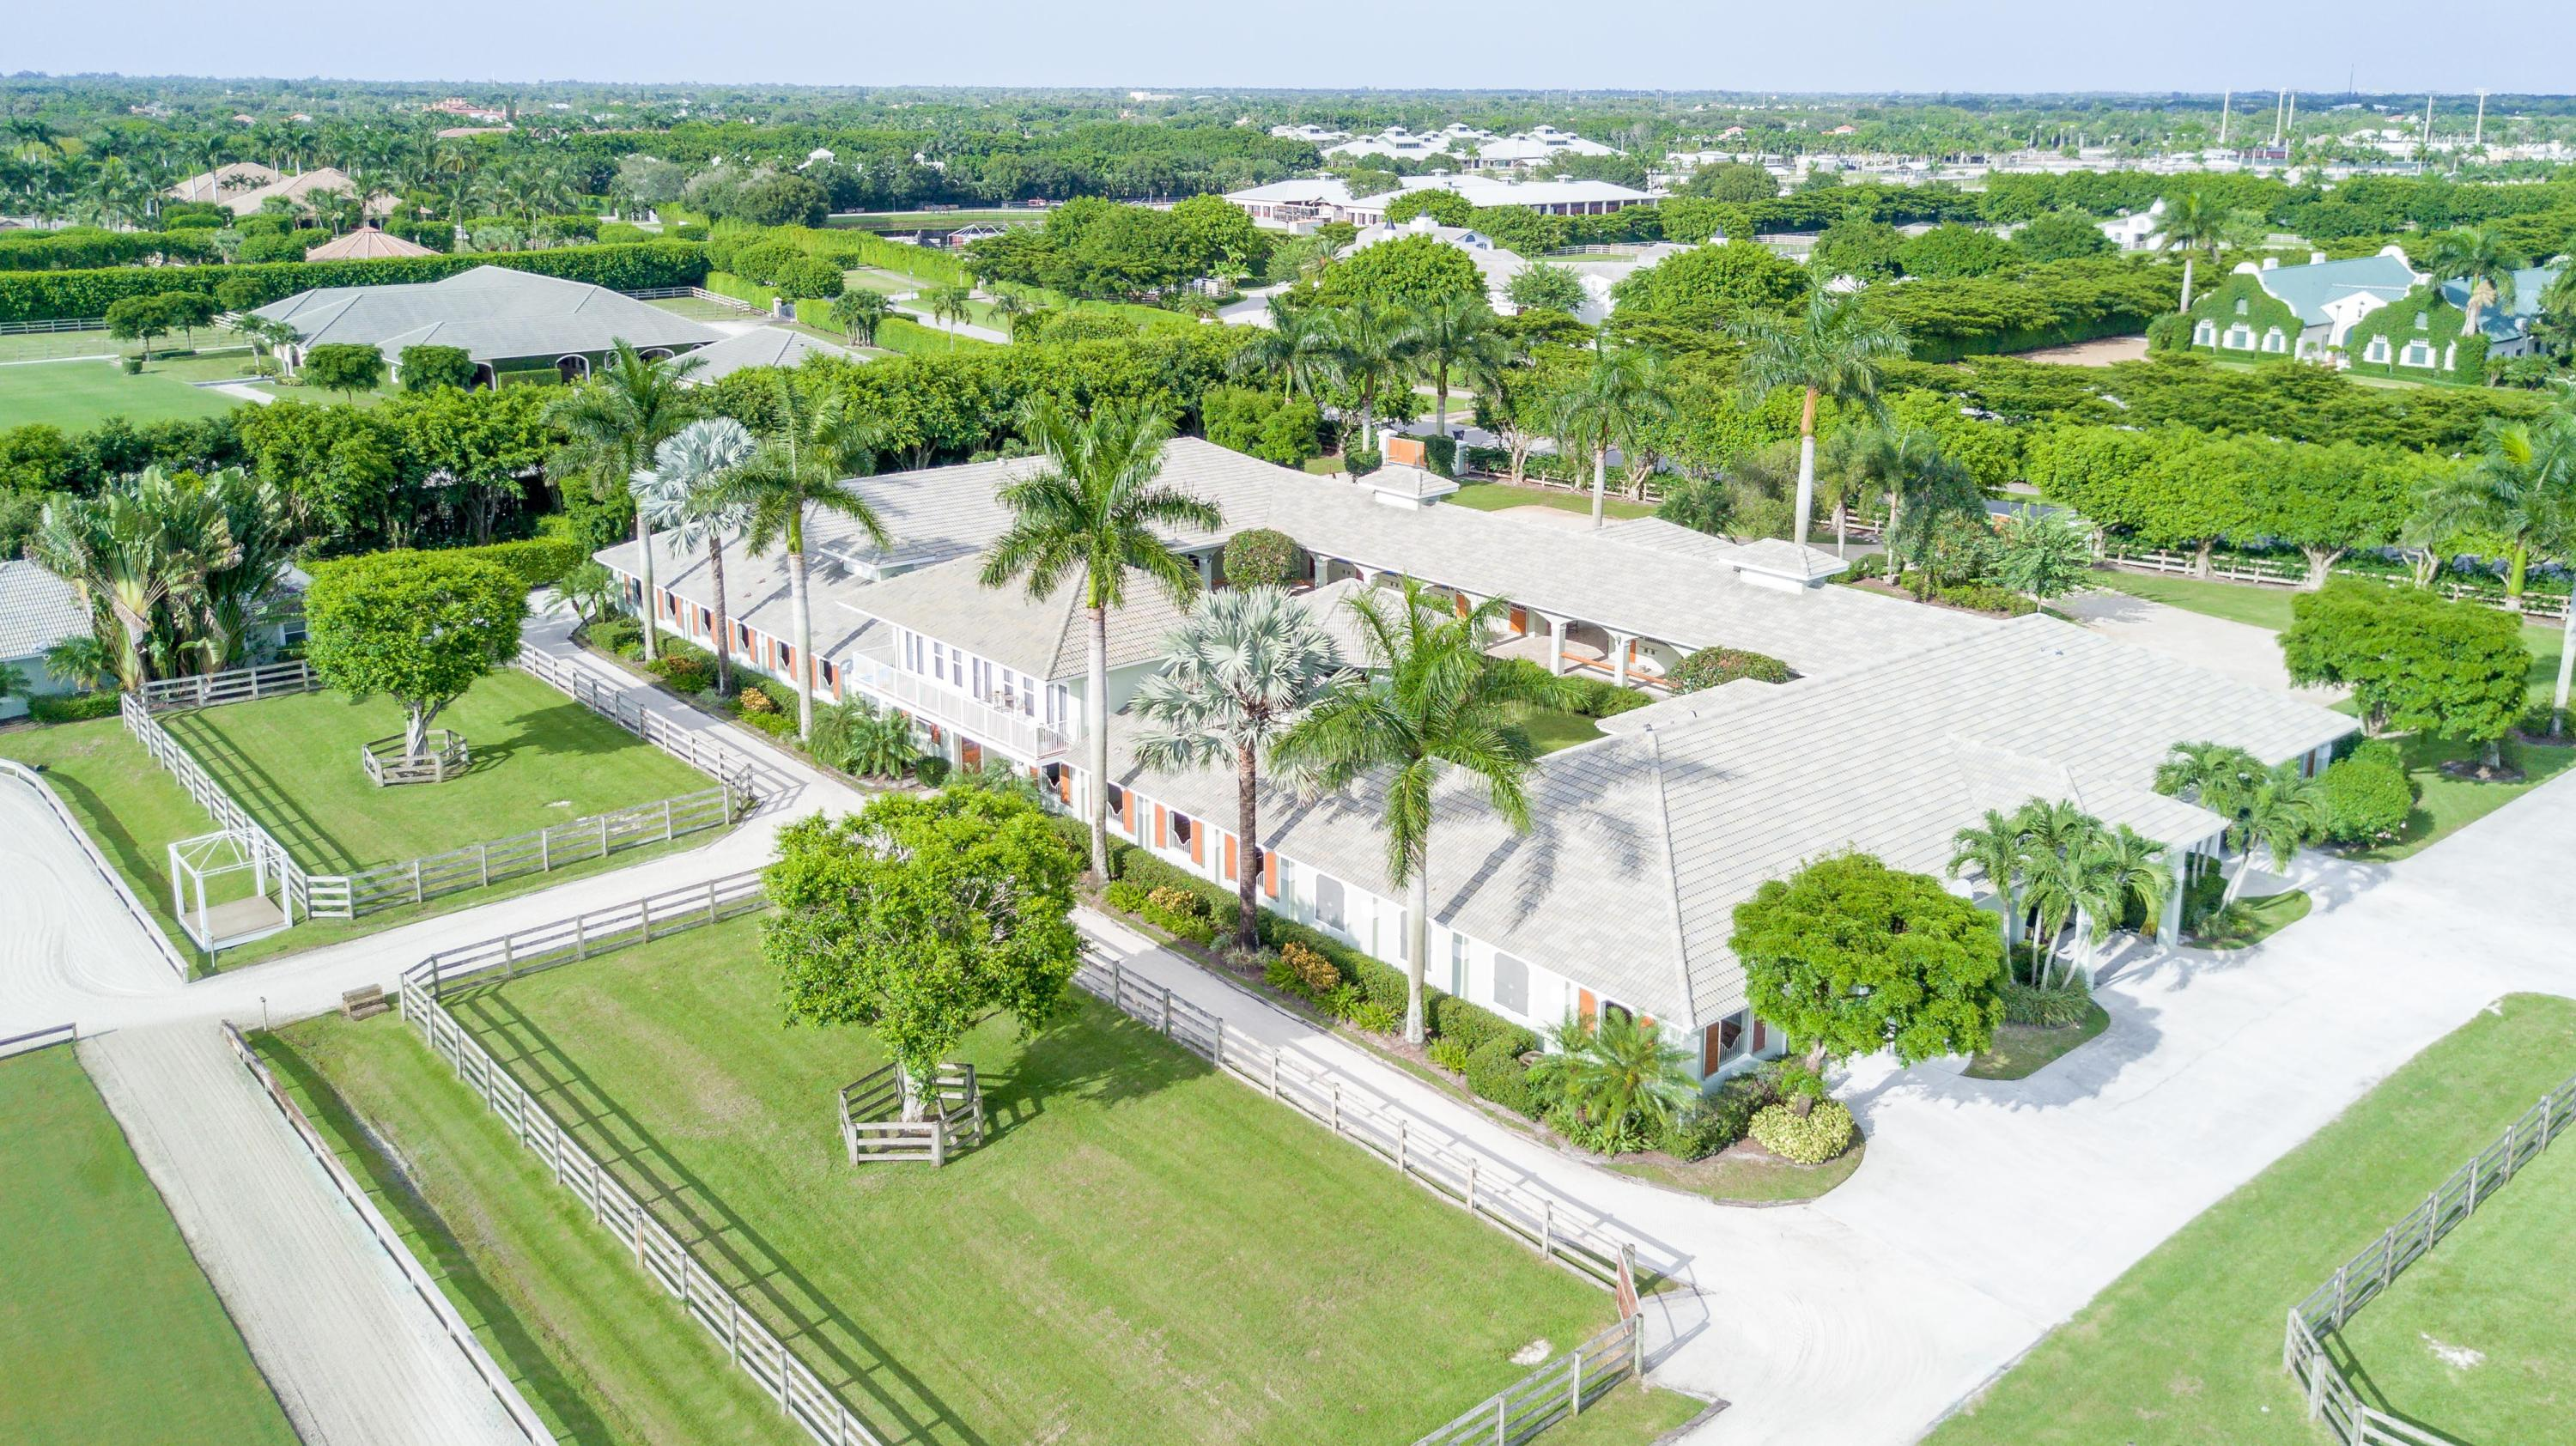 3351 Grand Prix Farms Drive, Wellington, Florida 33414, 2 Bedrooms Bedrooms, ,2.3 BathroomsBathrooms,Barn,For Rent,Grand Prix Farms,Grand Prix Farms,1,RX-10523010